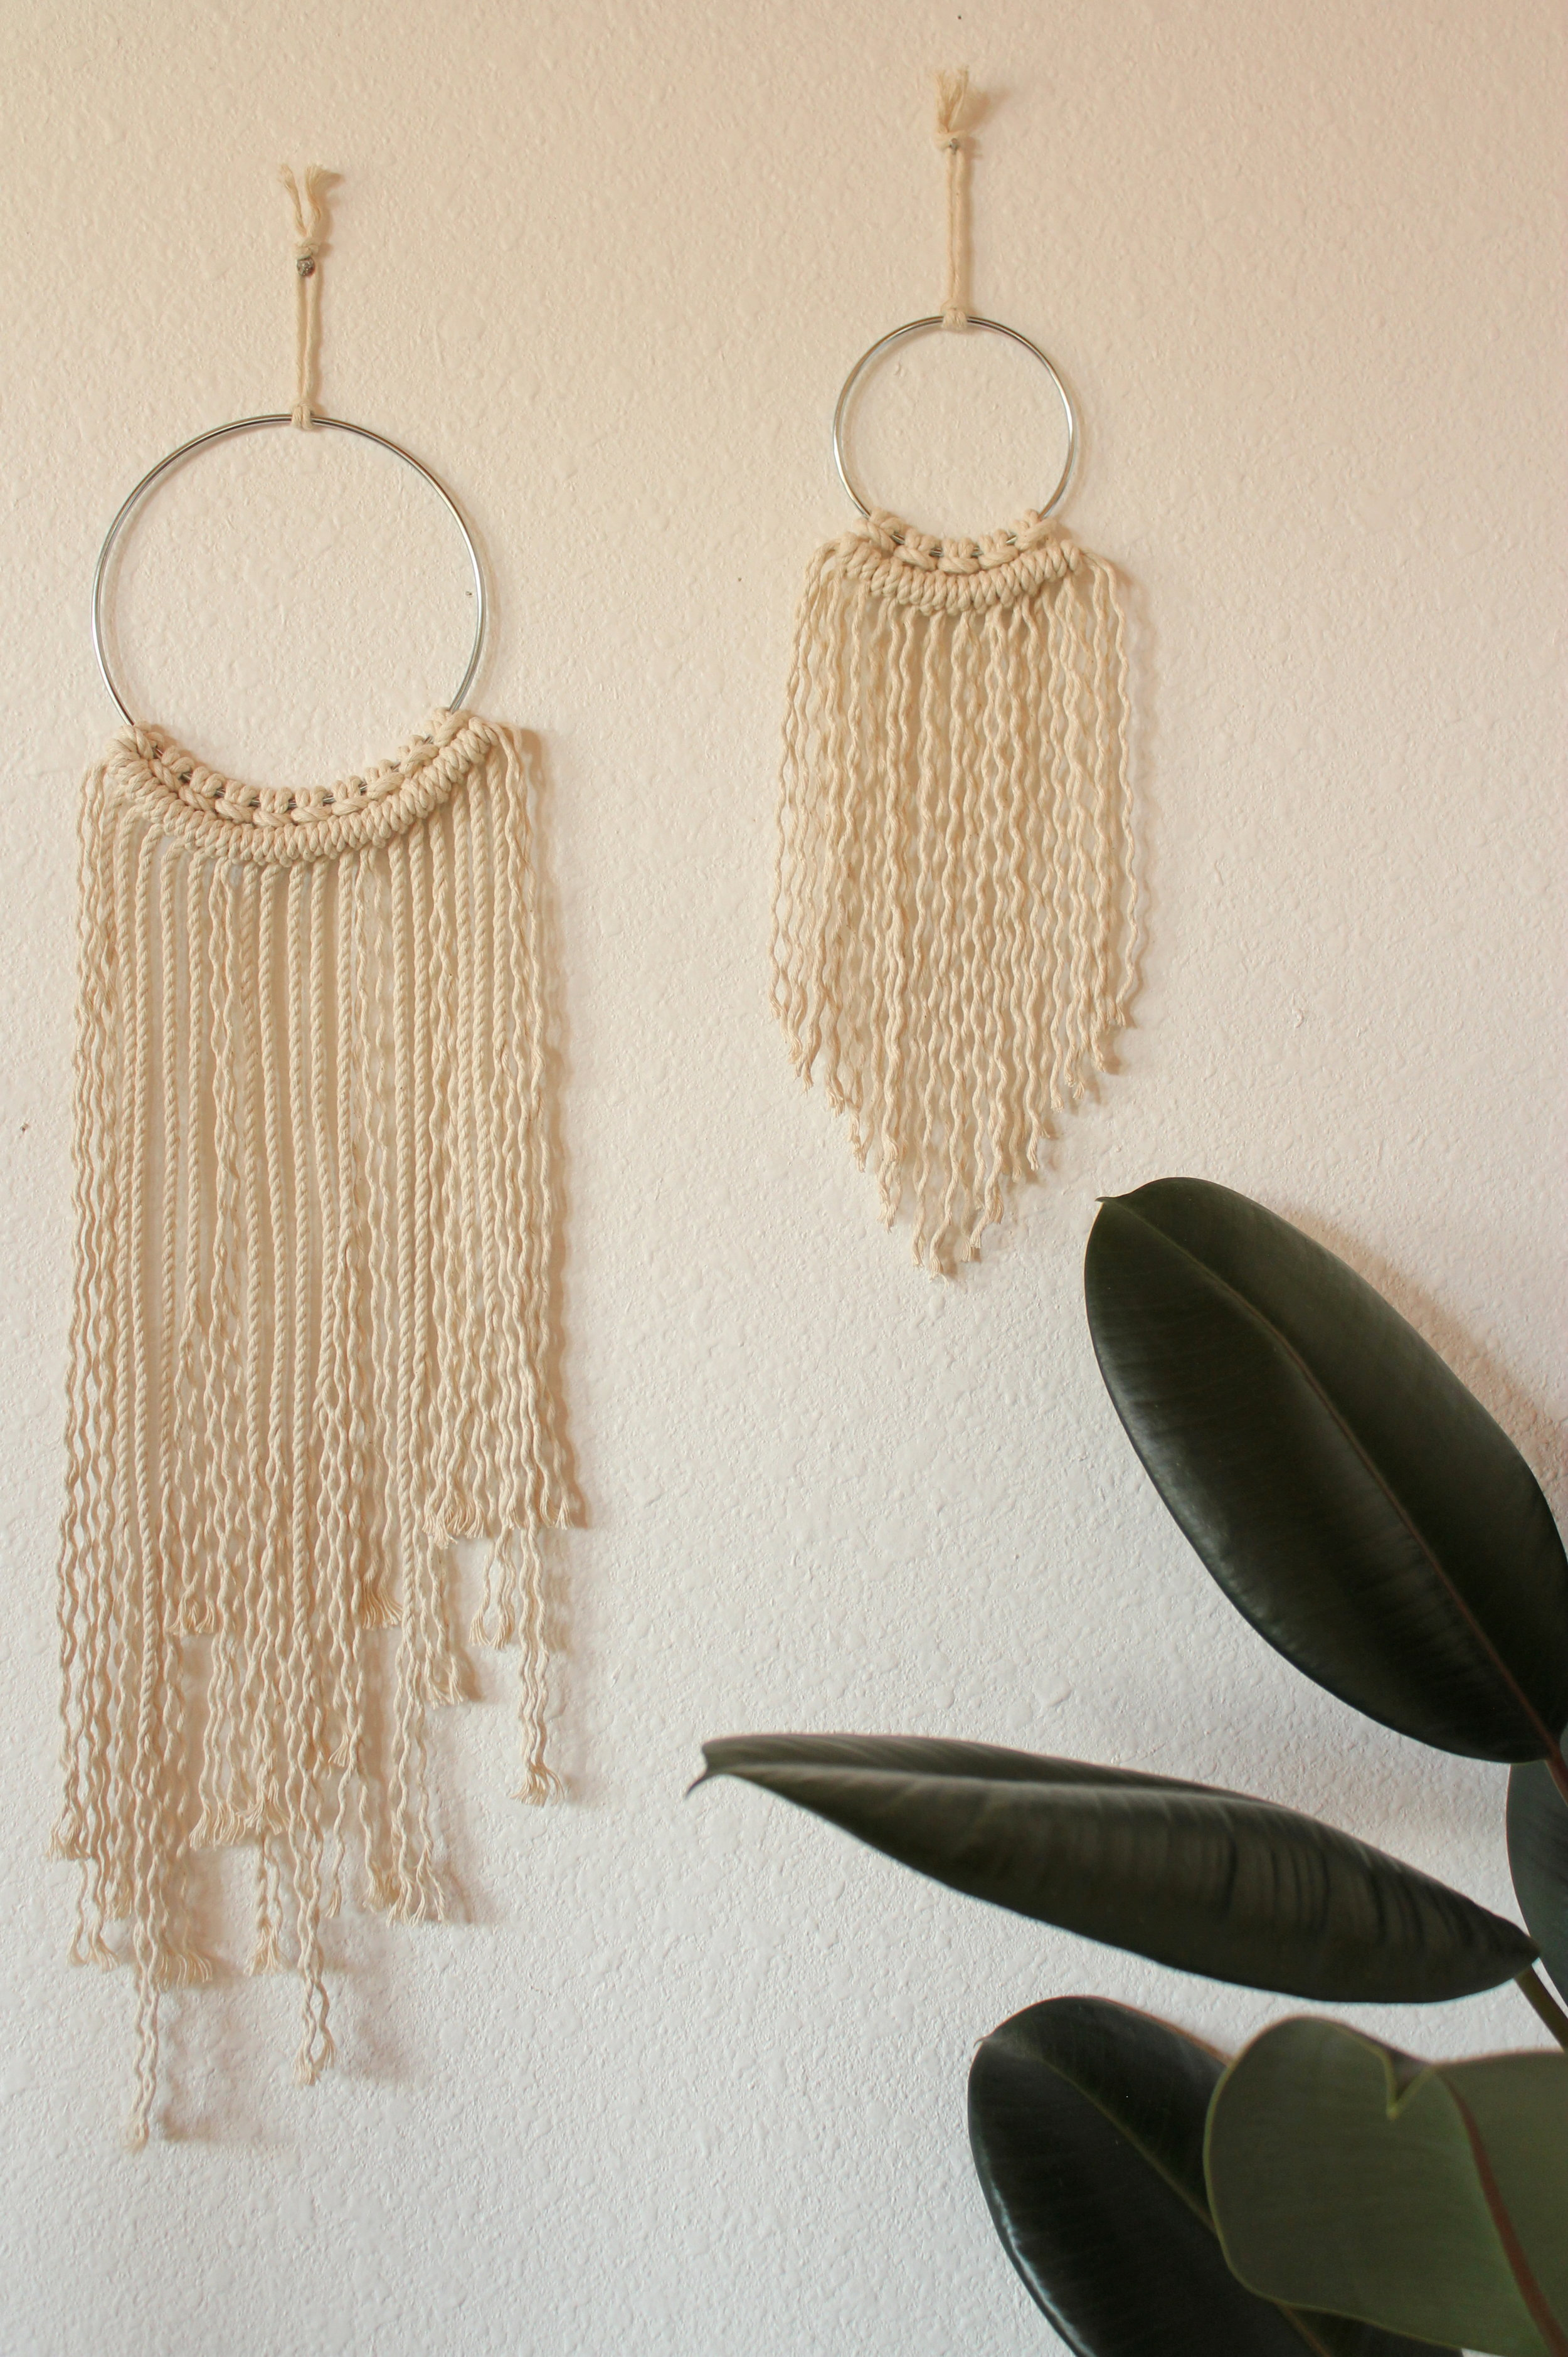 OPENED AND UNSTOPPED MACRAME WALL HANGING DUO